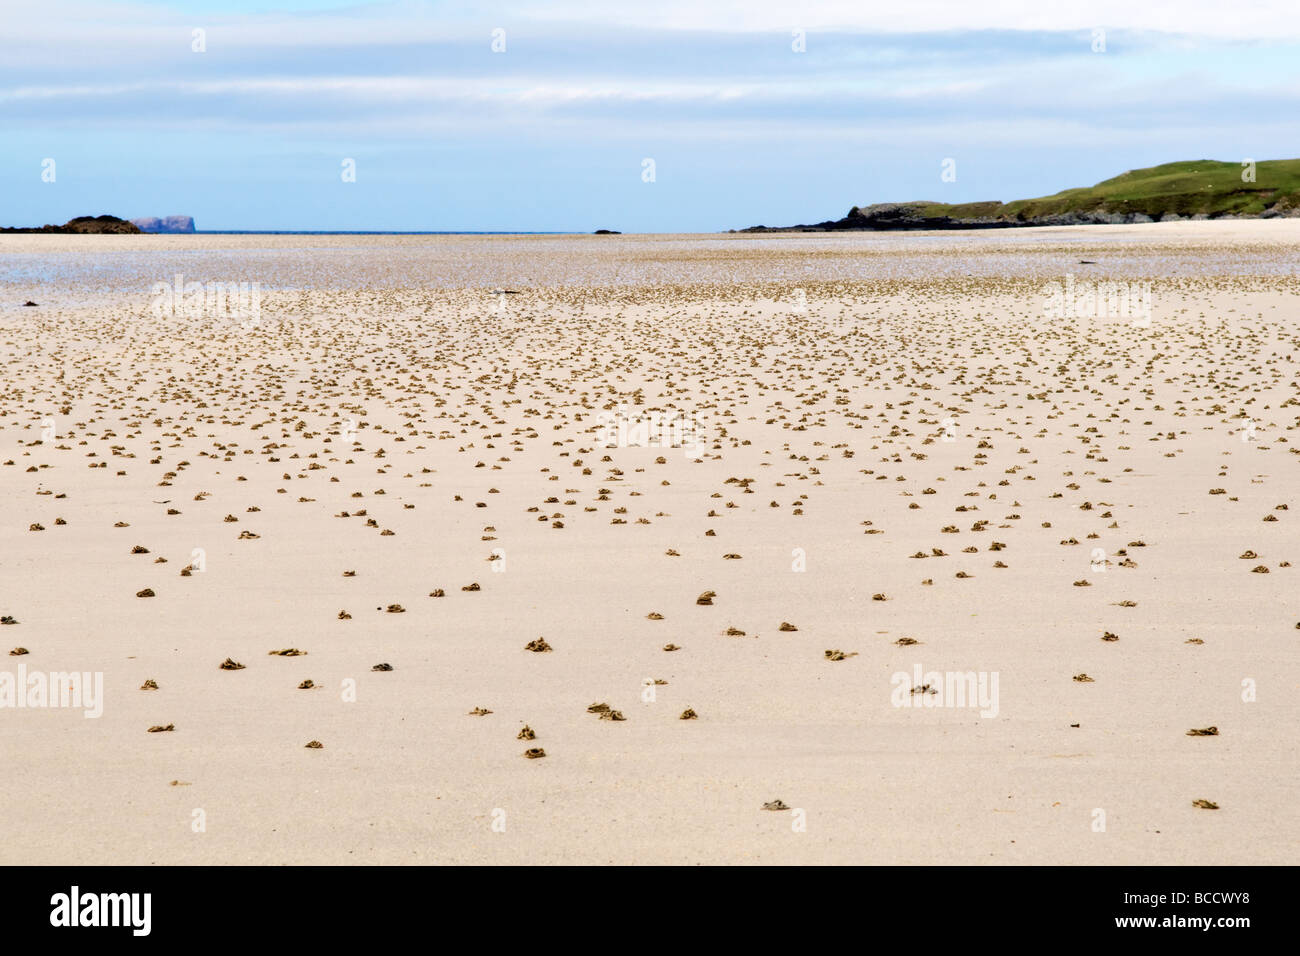 Sandy uk beach at Balnakeil Bay Scotland covered in lugworm sand casts taken in Spring time - Stock Image